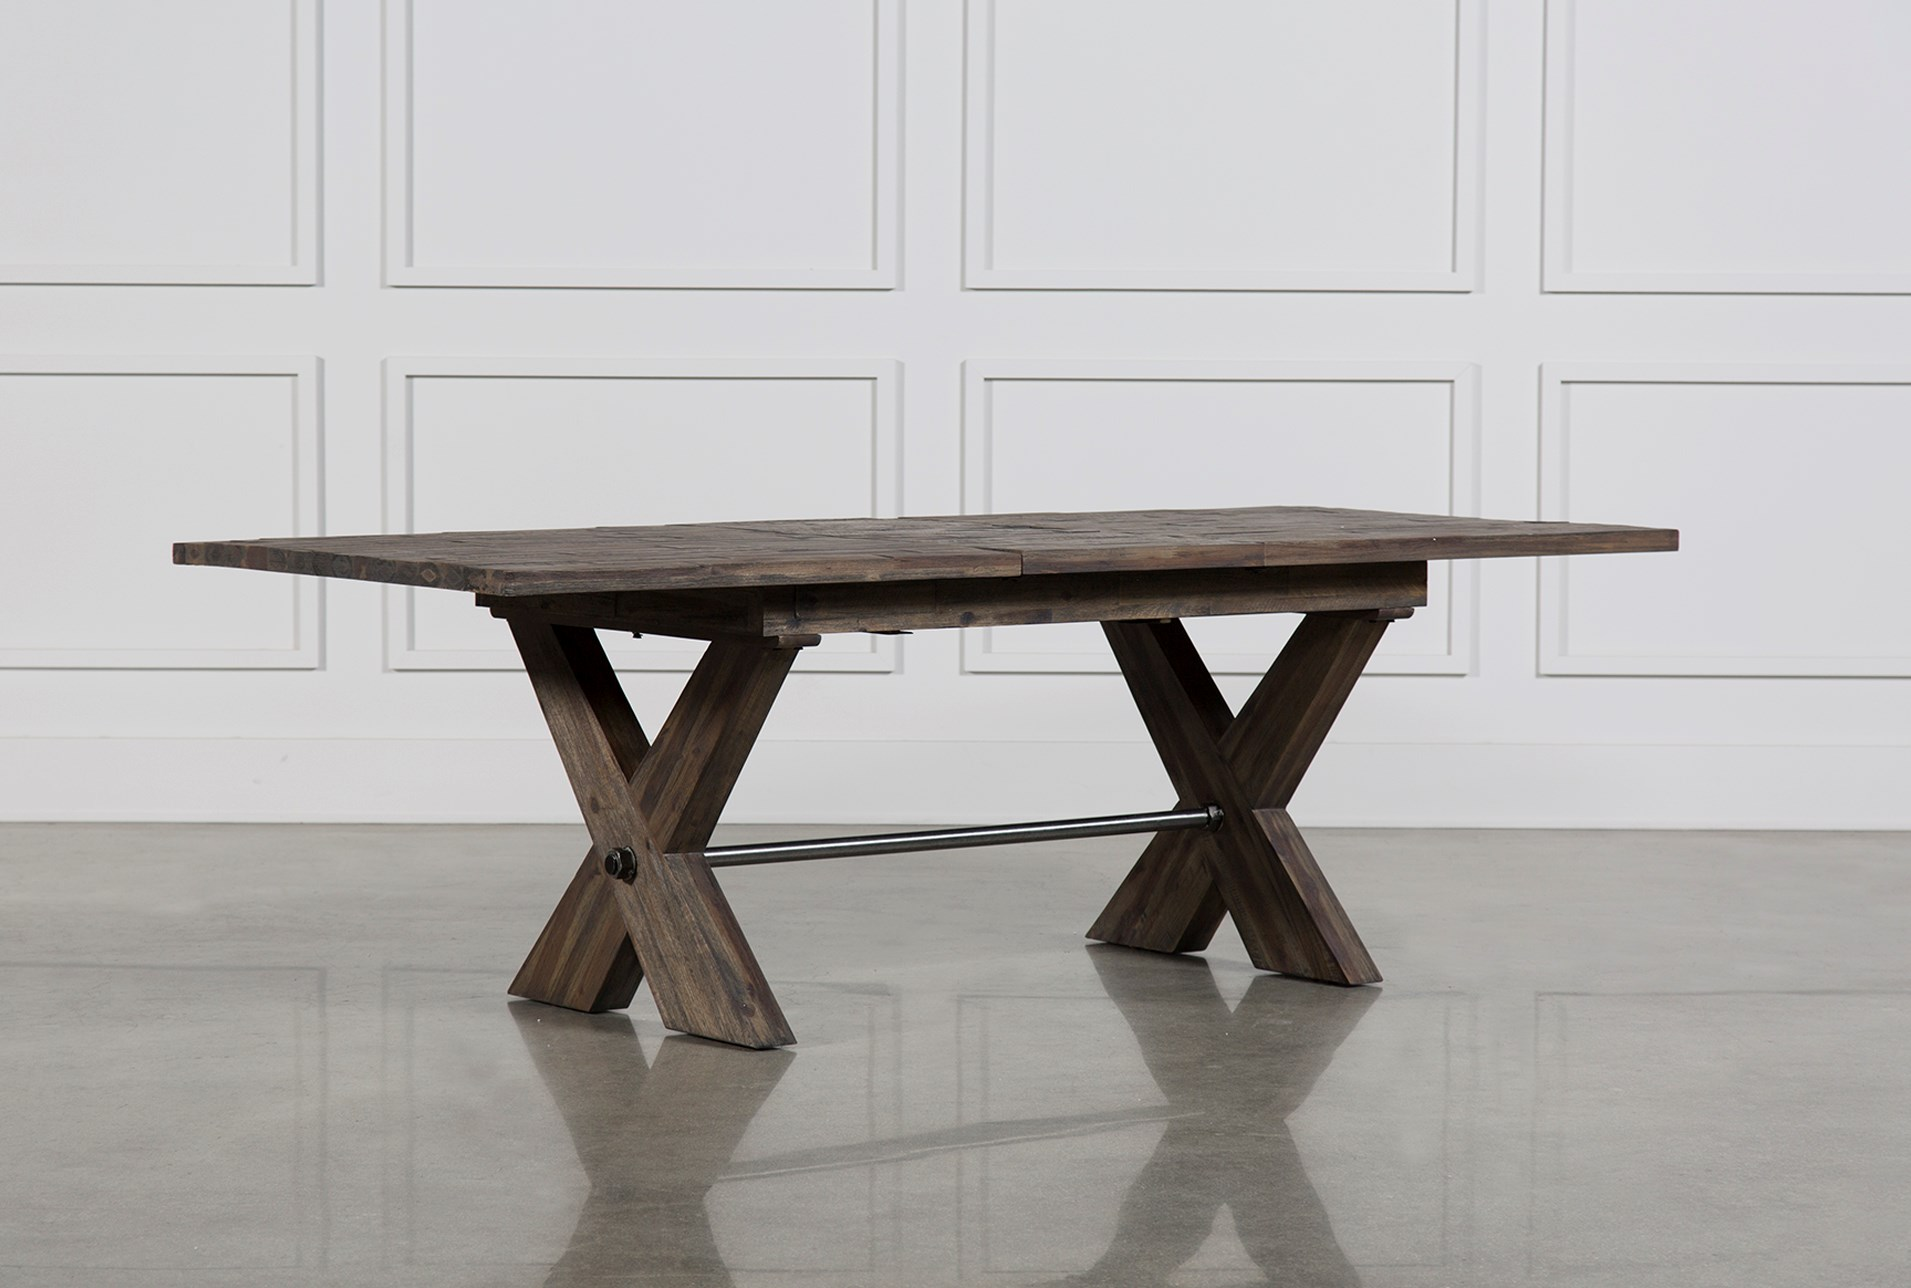 Rustic Dining Tables to Fit Your Dining Room Decor | Living Spaces